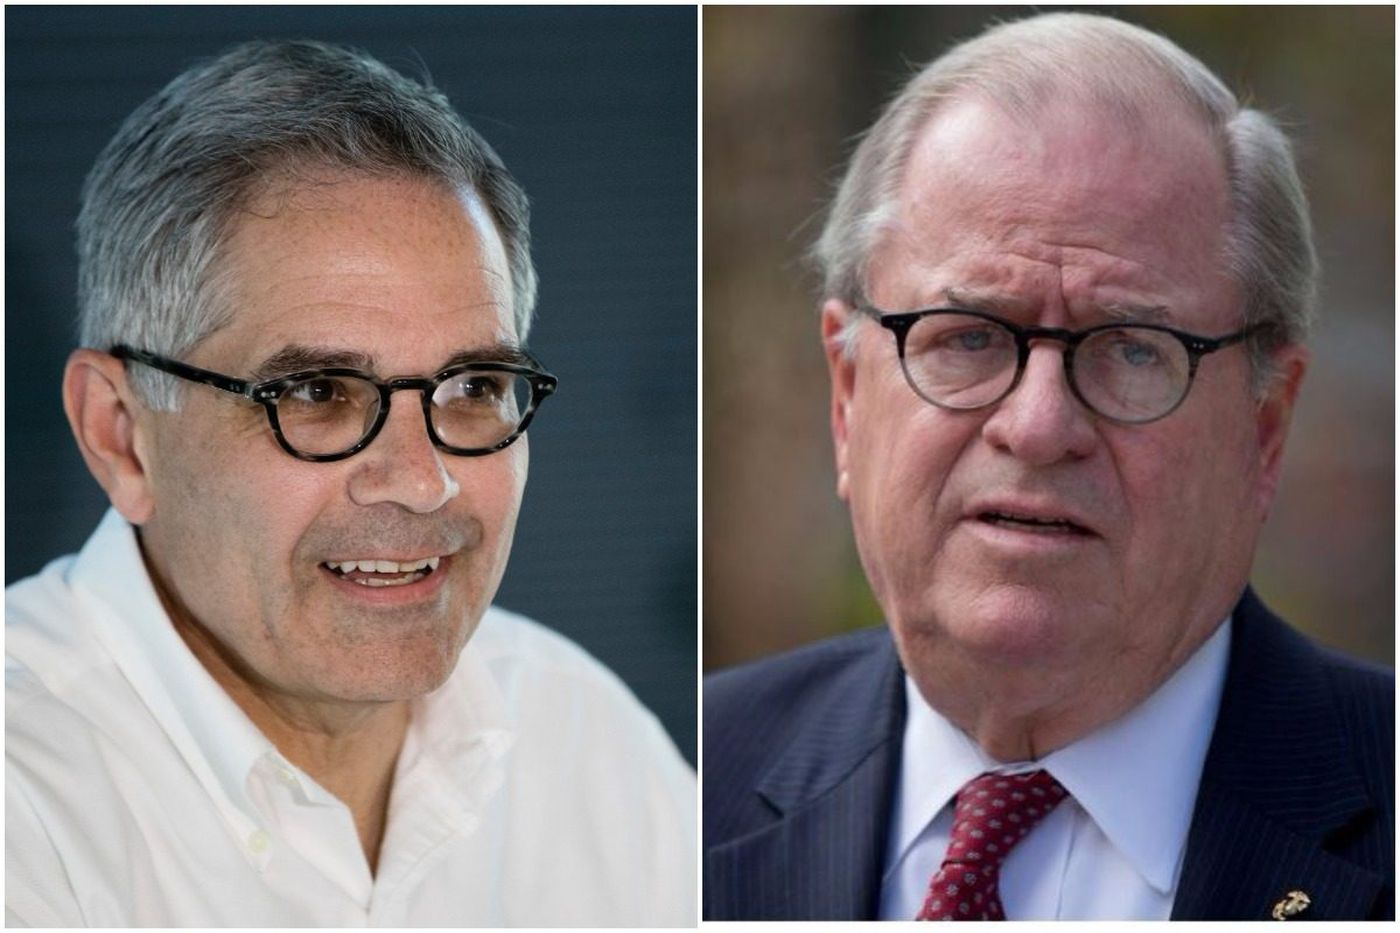 Clout: Krasner seeks Castille's advice on how to run Philly DA's Office